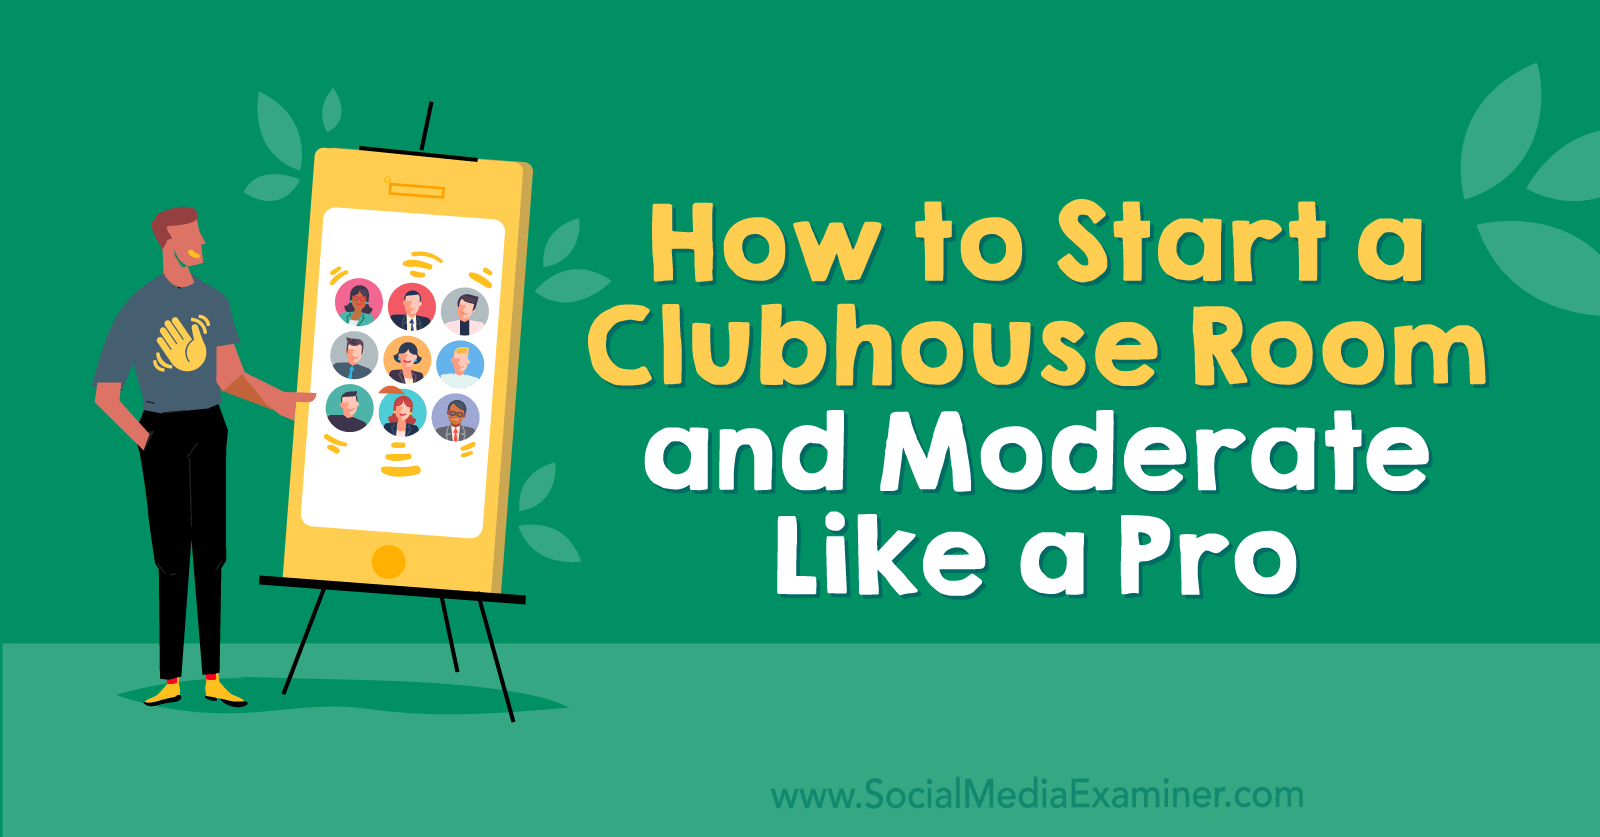 How to Start a Clubhouse Room and Moderate Like a Pro by Michael Stelzner on Social Media Examiner.